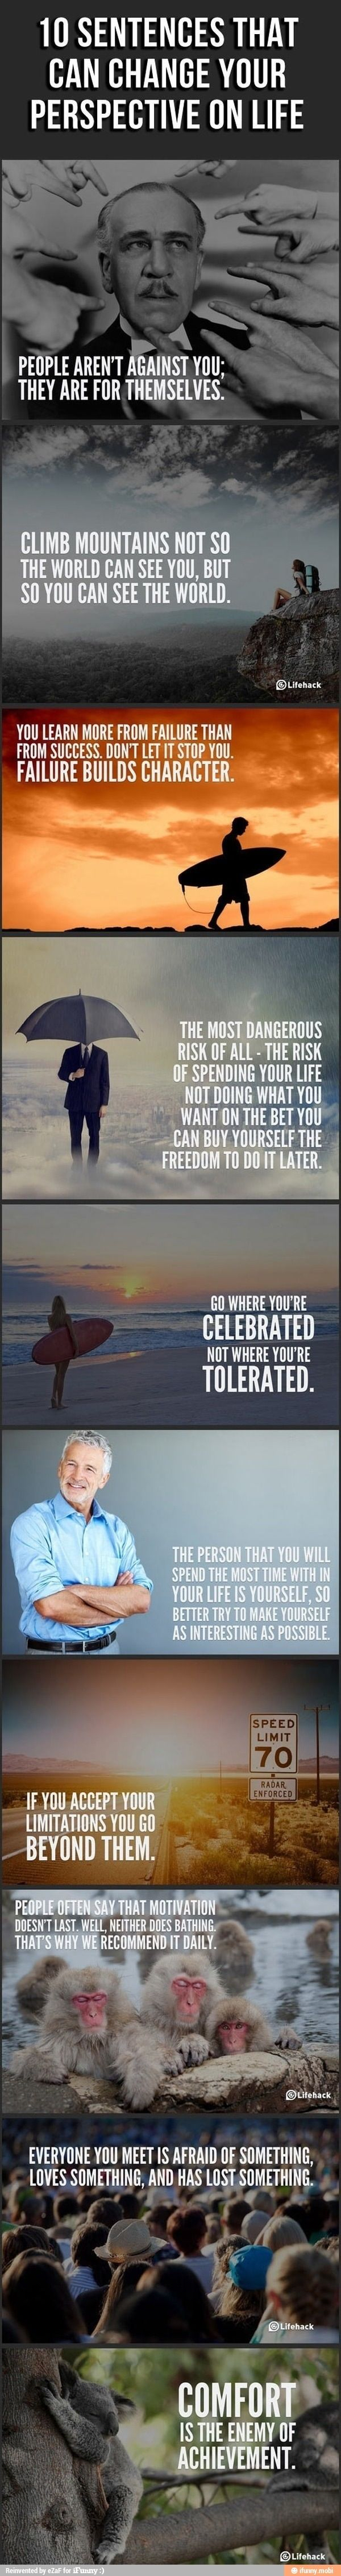 10 sentences that can change your perspective on life.